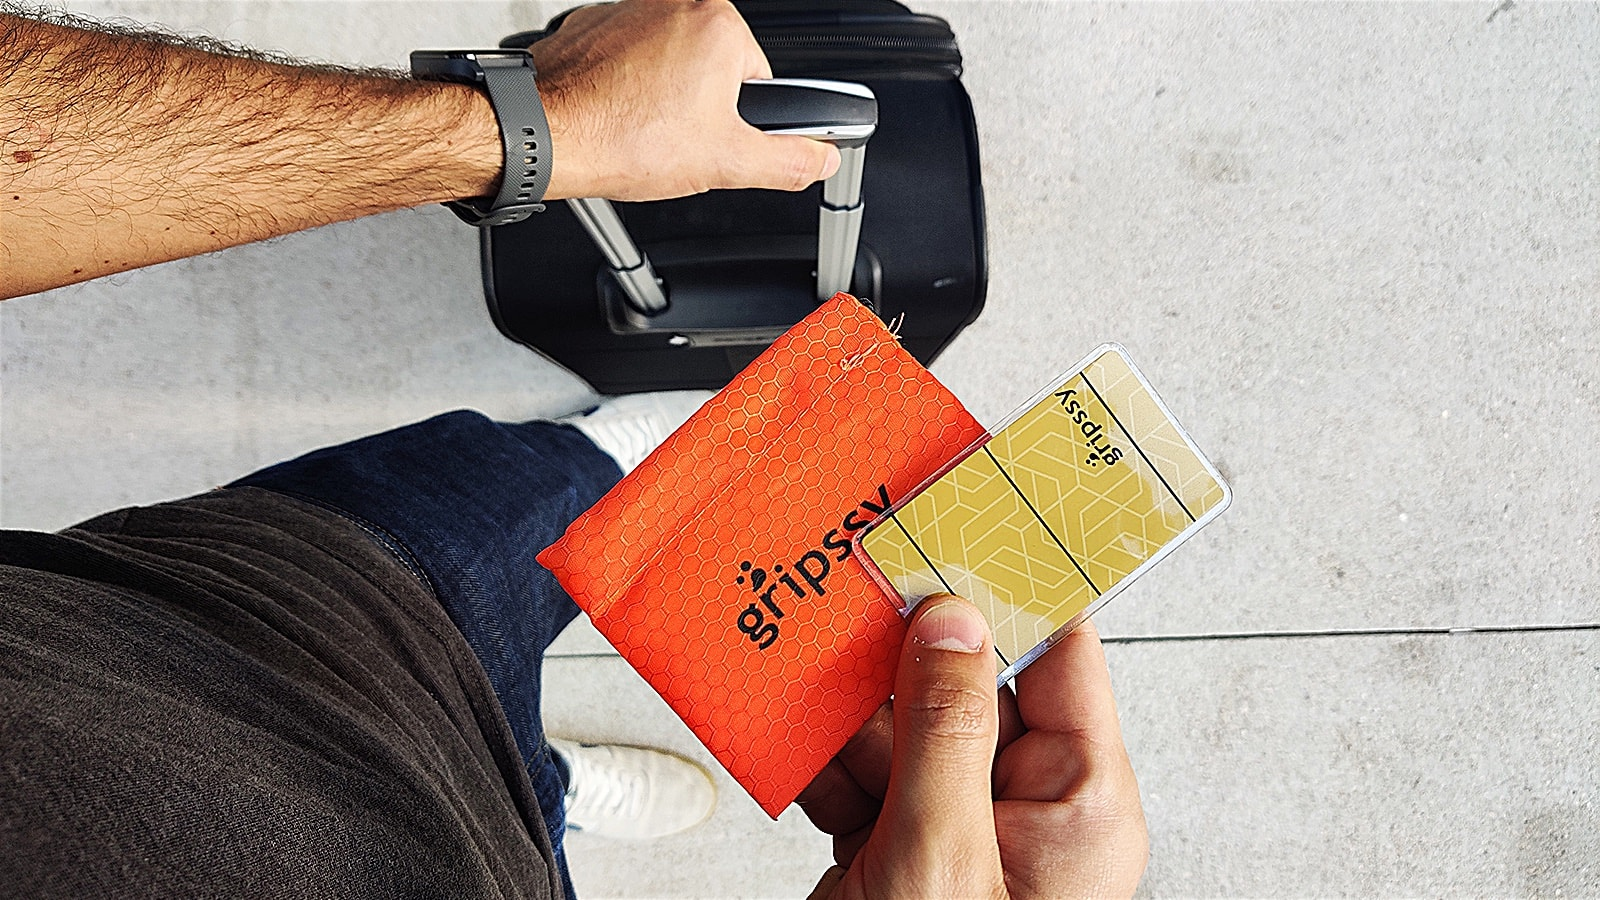 Gripssy nano-tech phone holder sticks to your device and holds it in place during travel